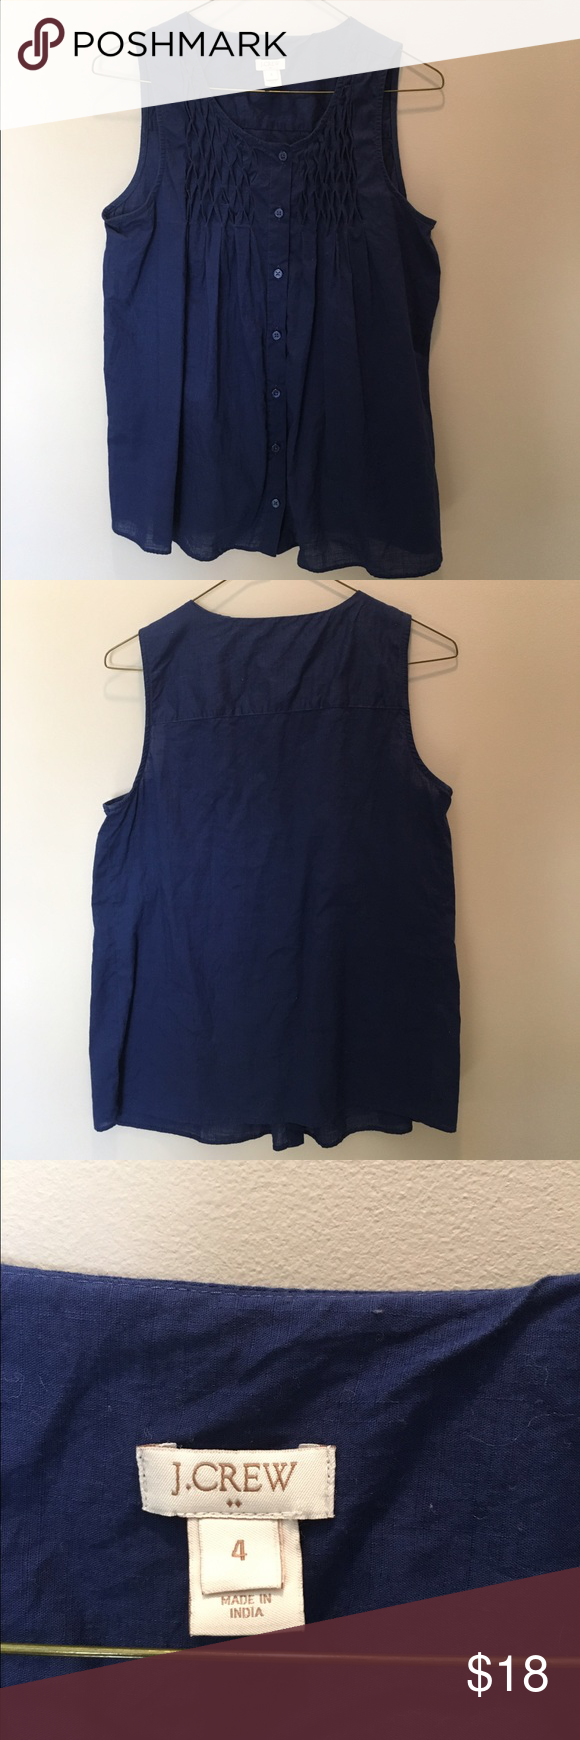 Navy Blue, Sleeveless, JCrew top Navy blue, light wear J.Crew Factory Tops Blouses